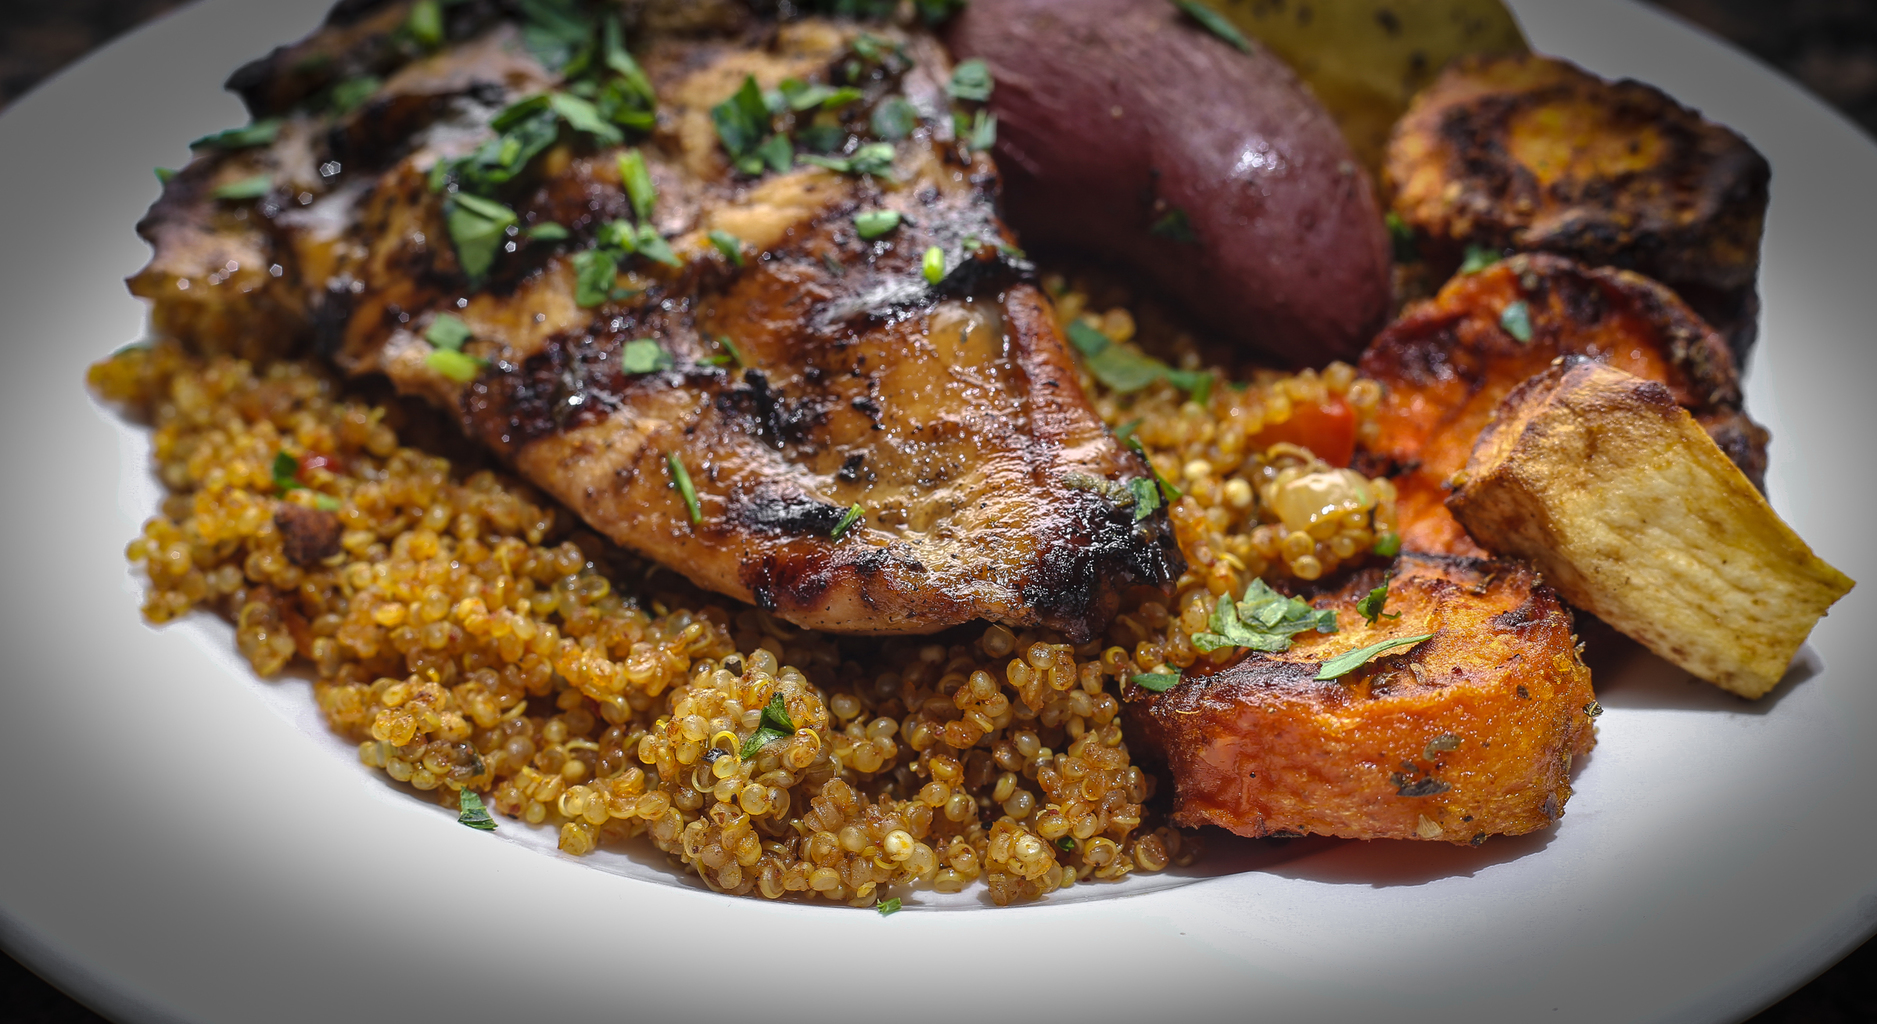 Grilled Chicken Breast and Quinoa